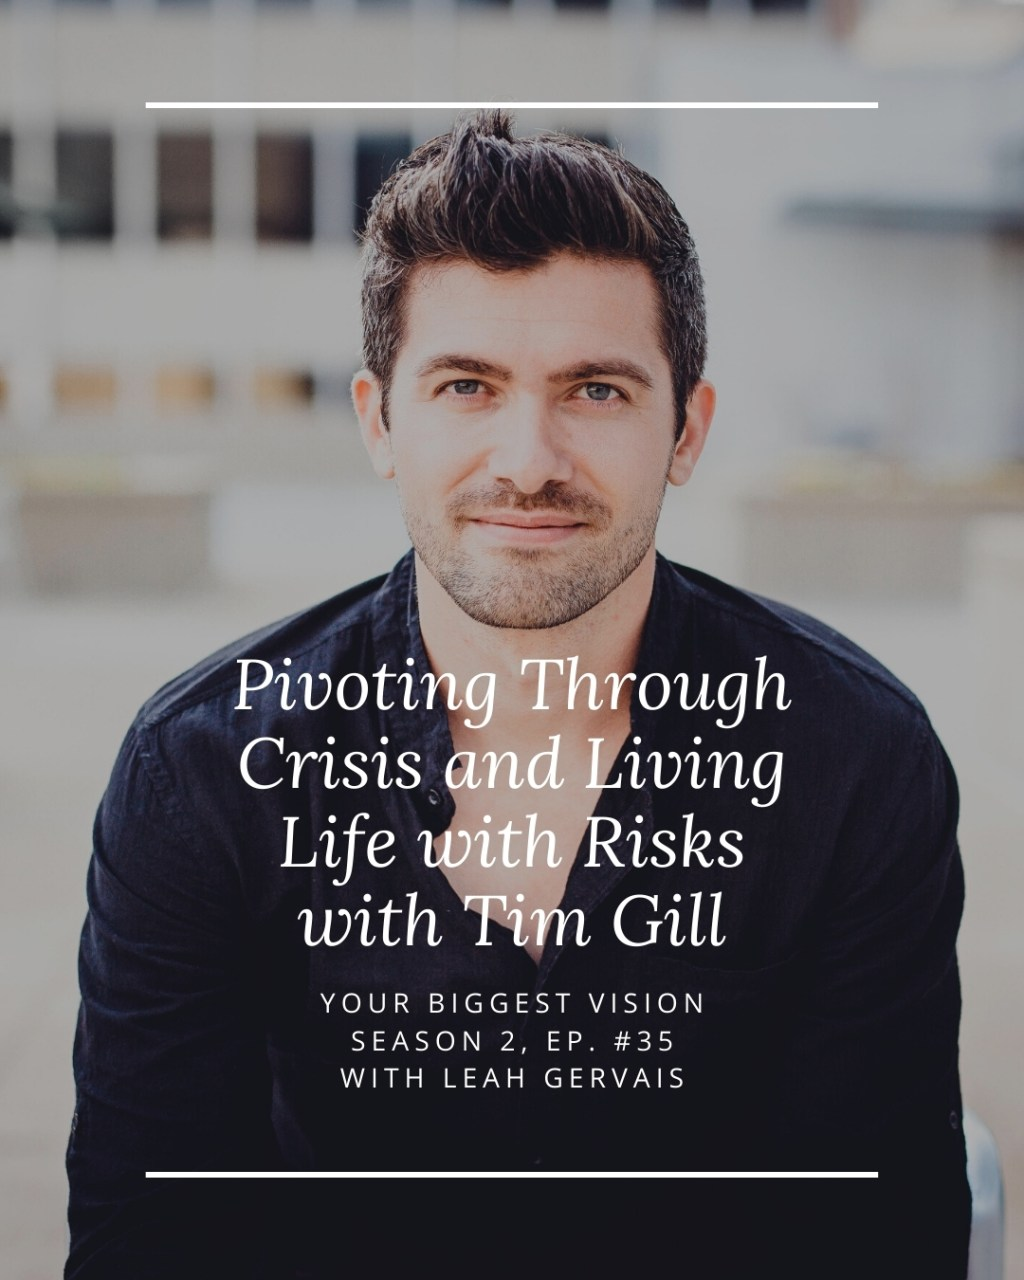 Tim Gill, co-founder of BoothCentral, is here to remind us that being forced to pivot can offer an opportunity for your business to thrive.